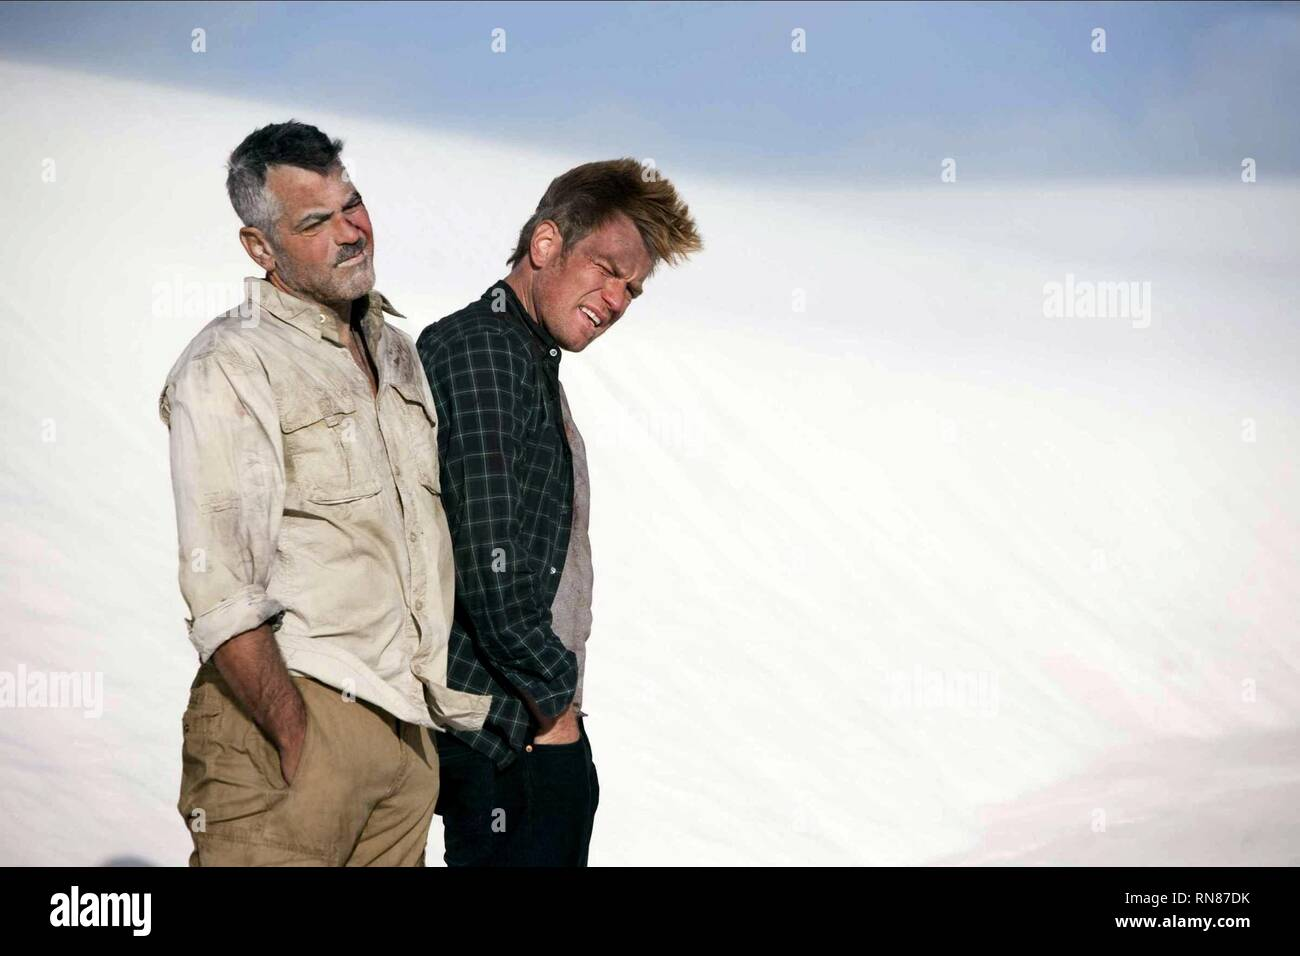 CLOONEY,MCGREGOR, THE MEN WHO STARE AT GOATS, 2009 - Stock Image